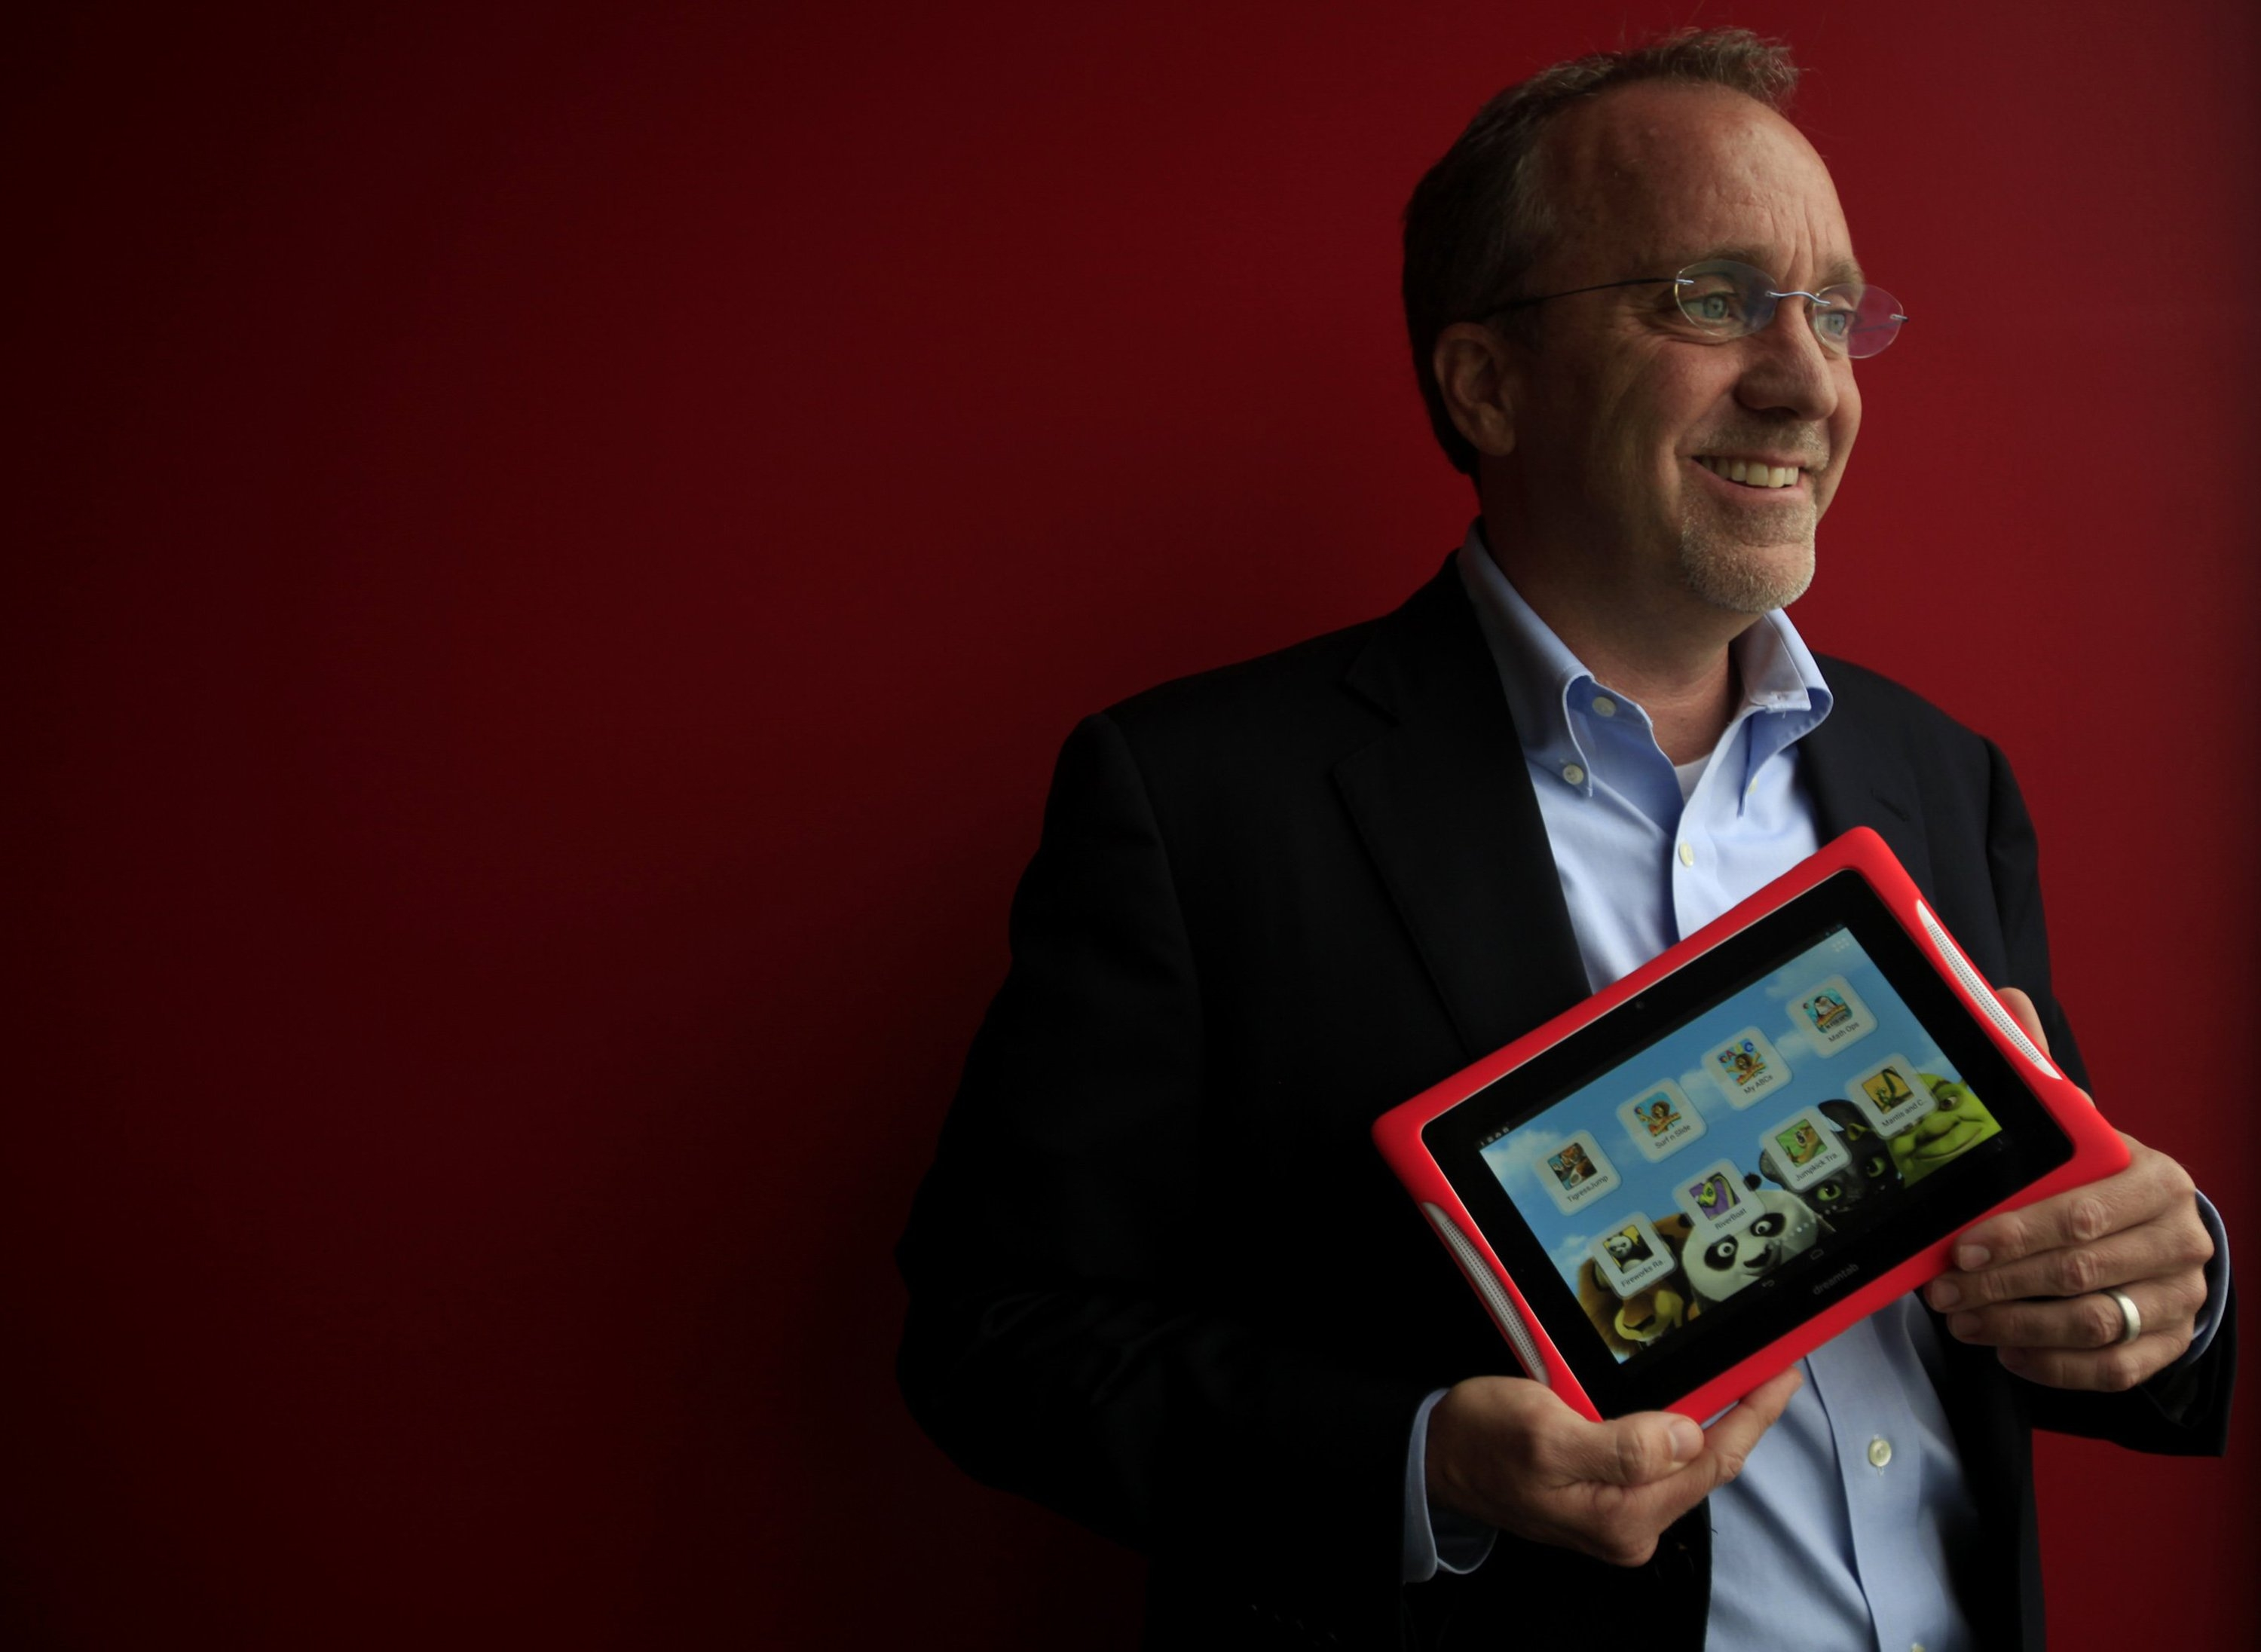 Giant tablets aimed at restoring family activities – The